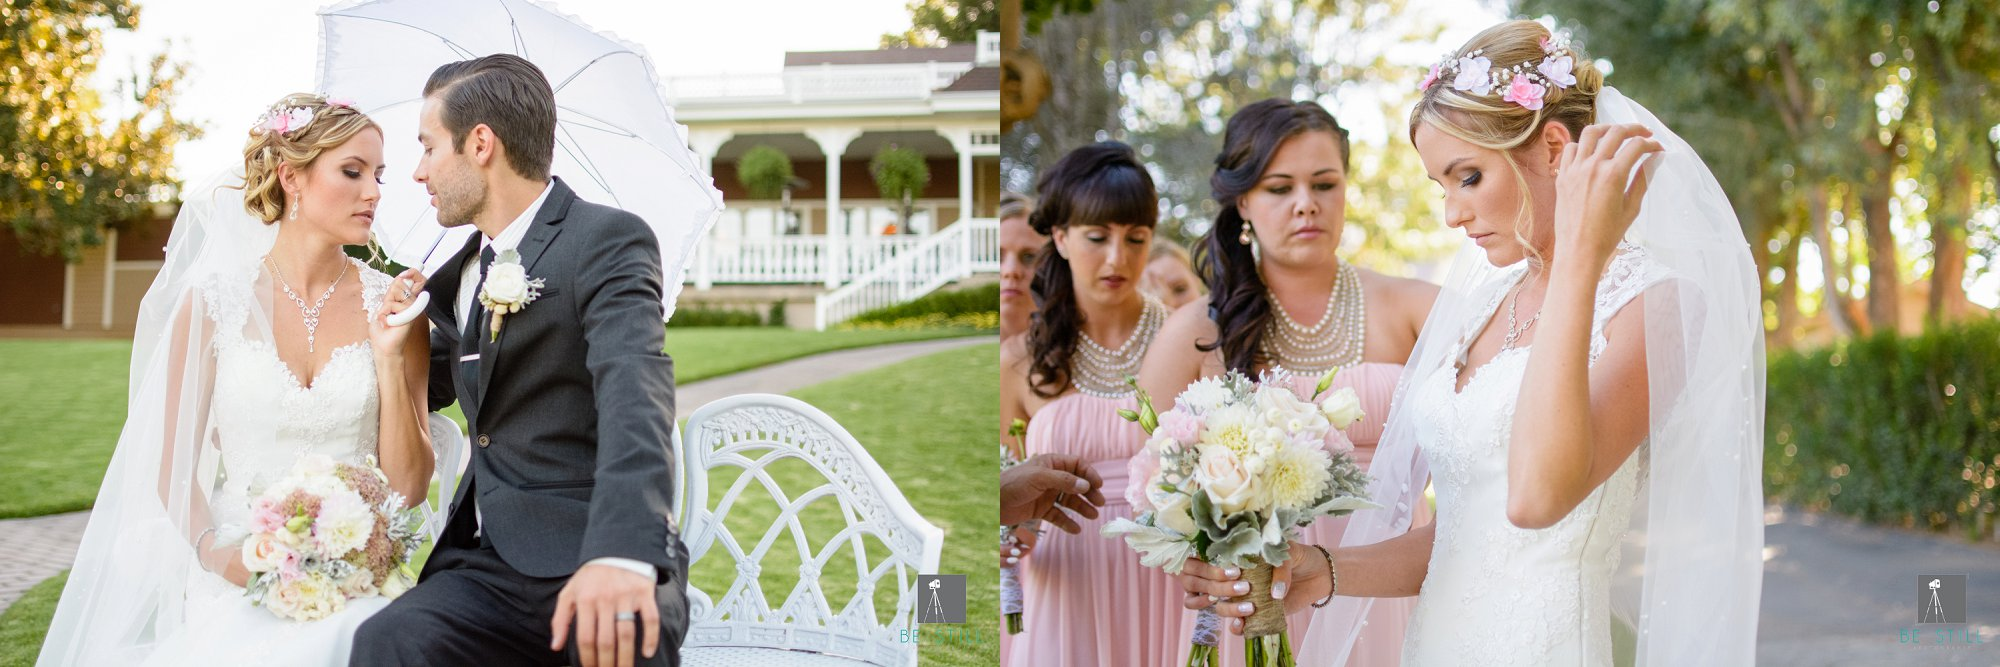 San Diego Wedding Photography Grand Tradition Estate_0015.jpg